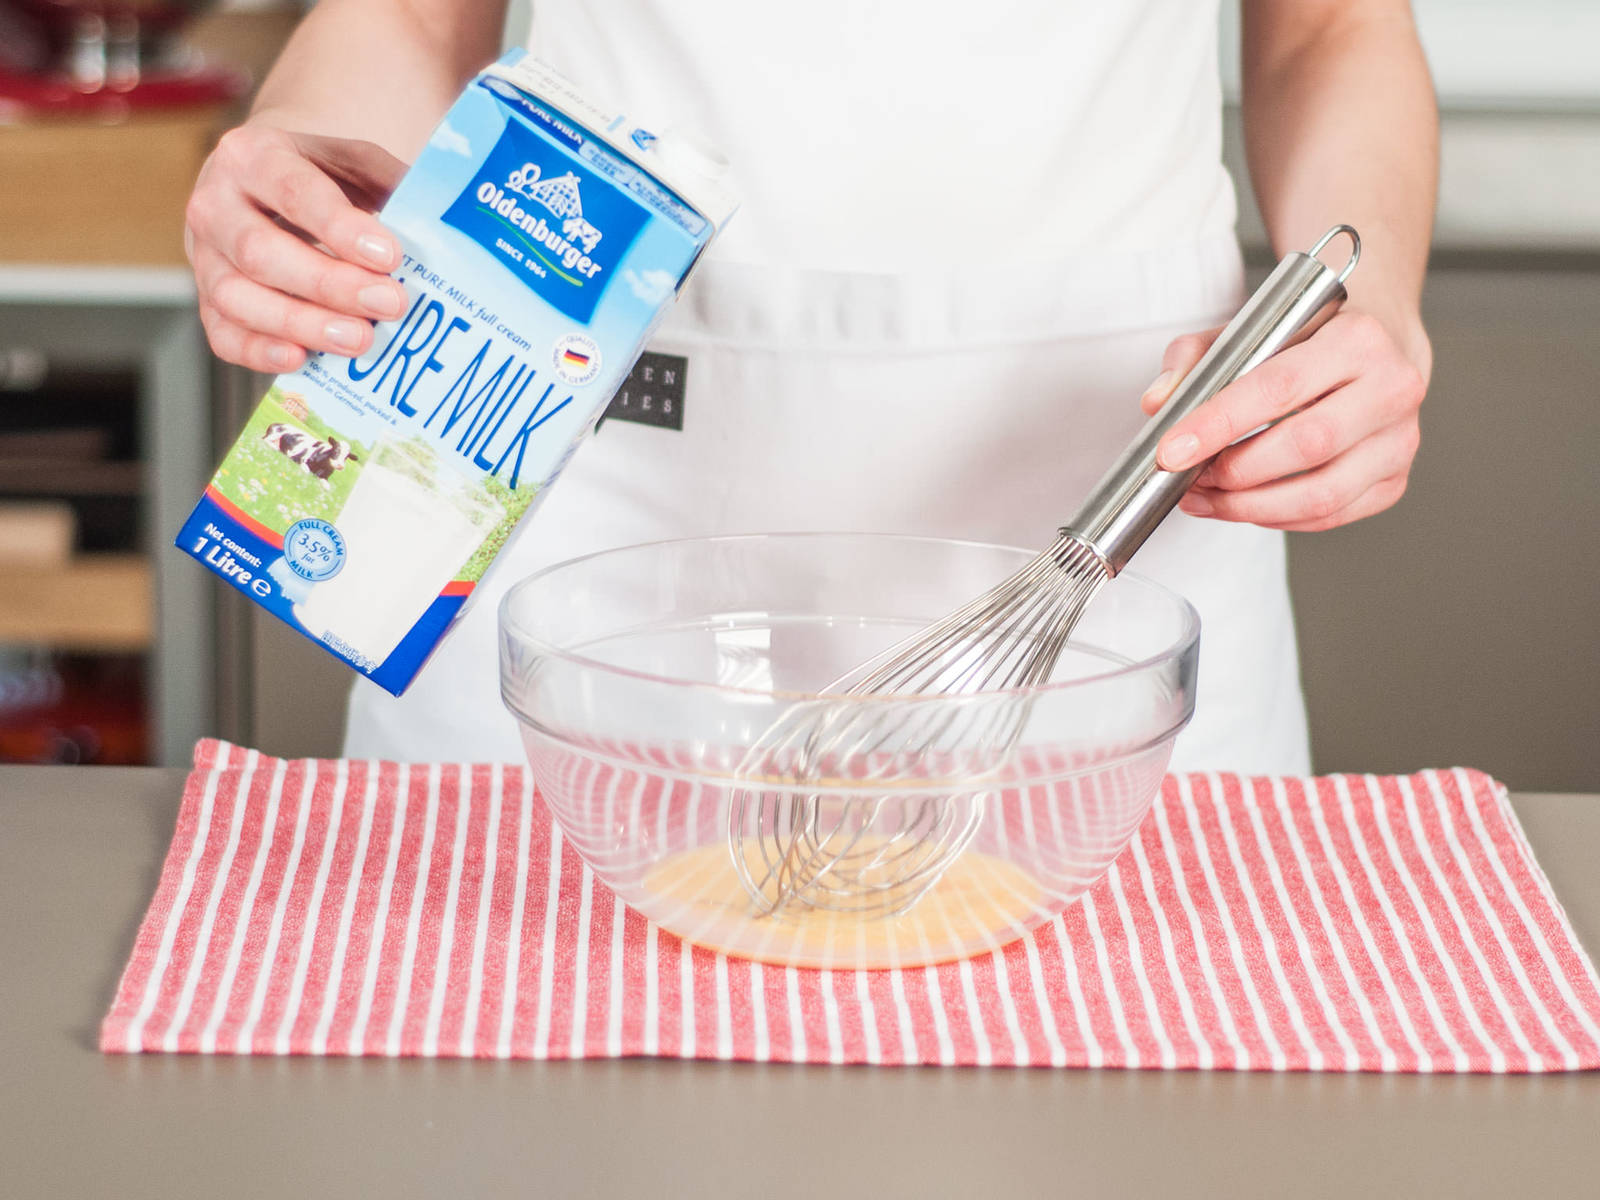 In a large bowl, whisk together milk and egg yolks.